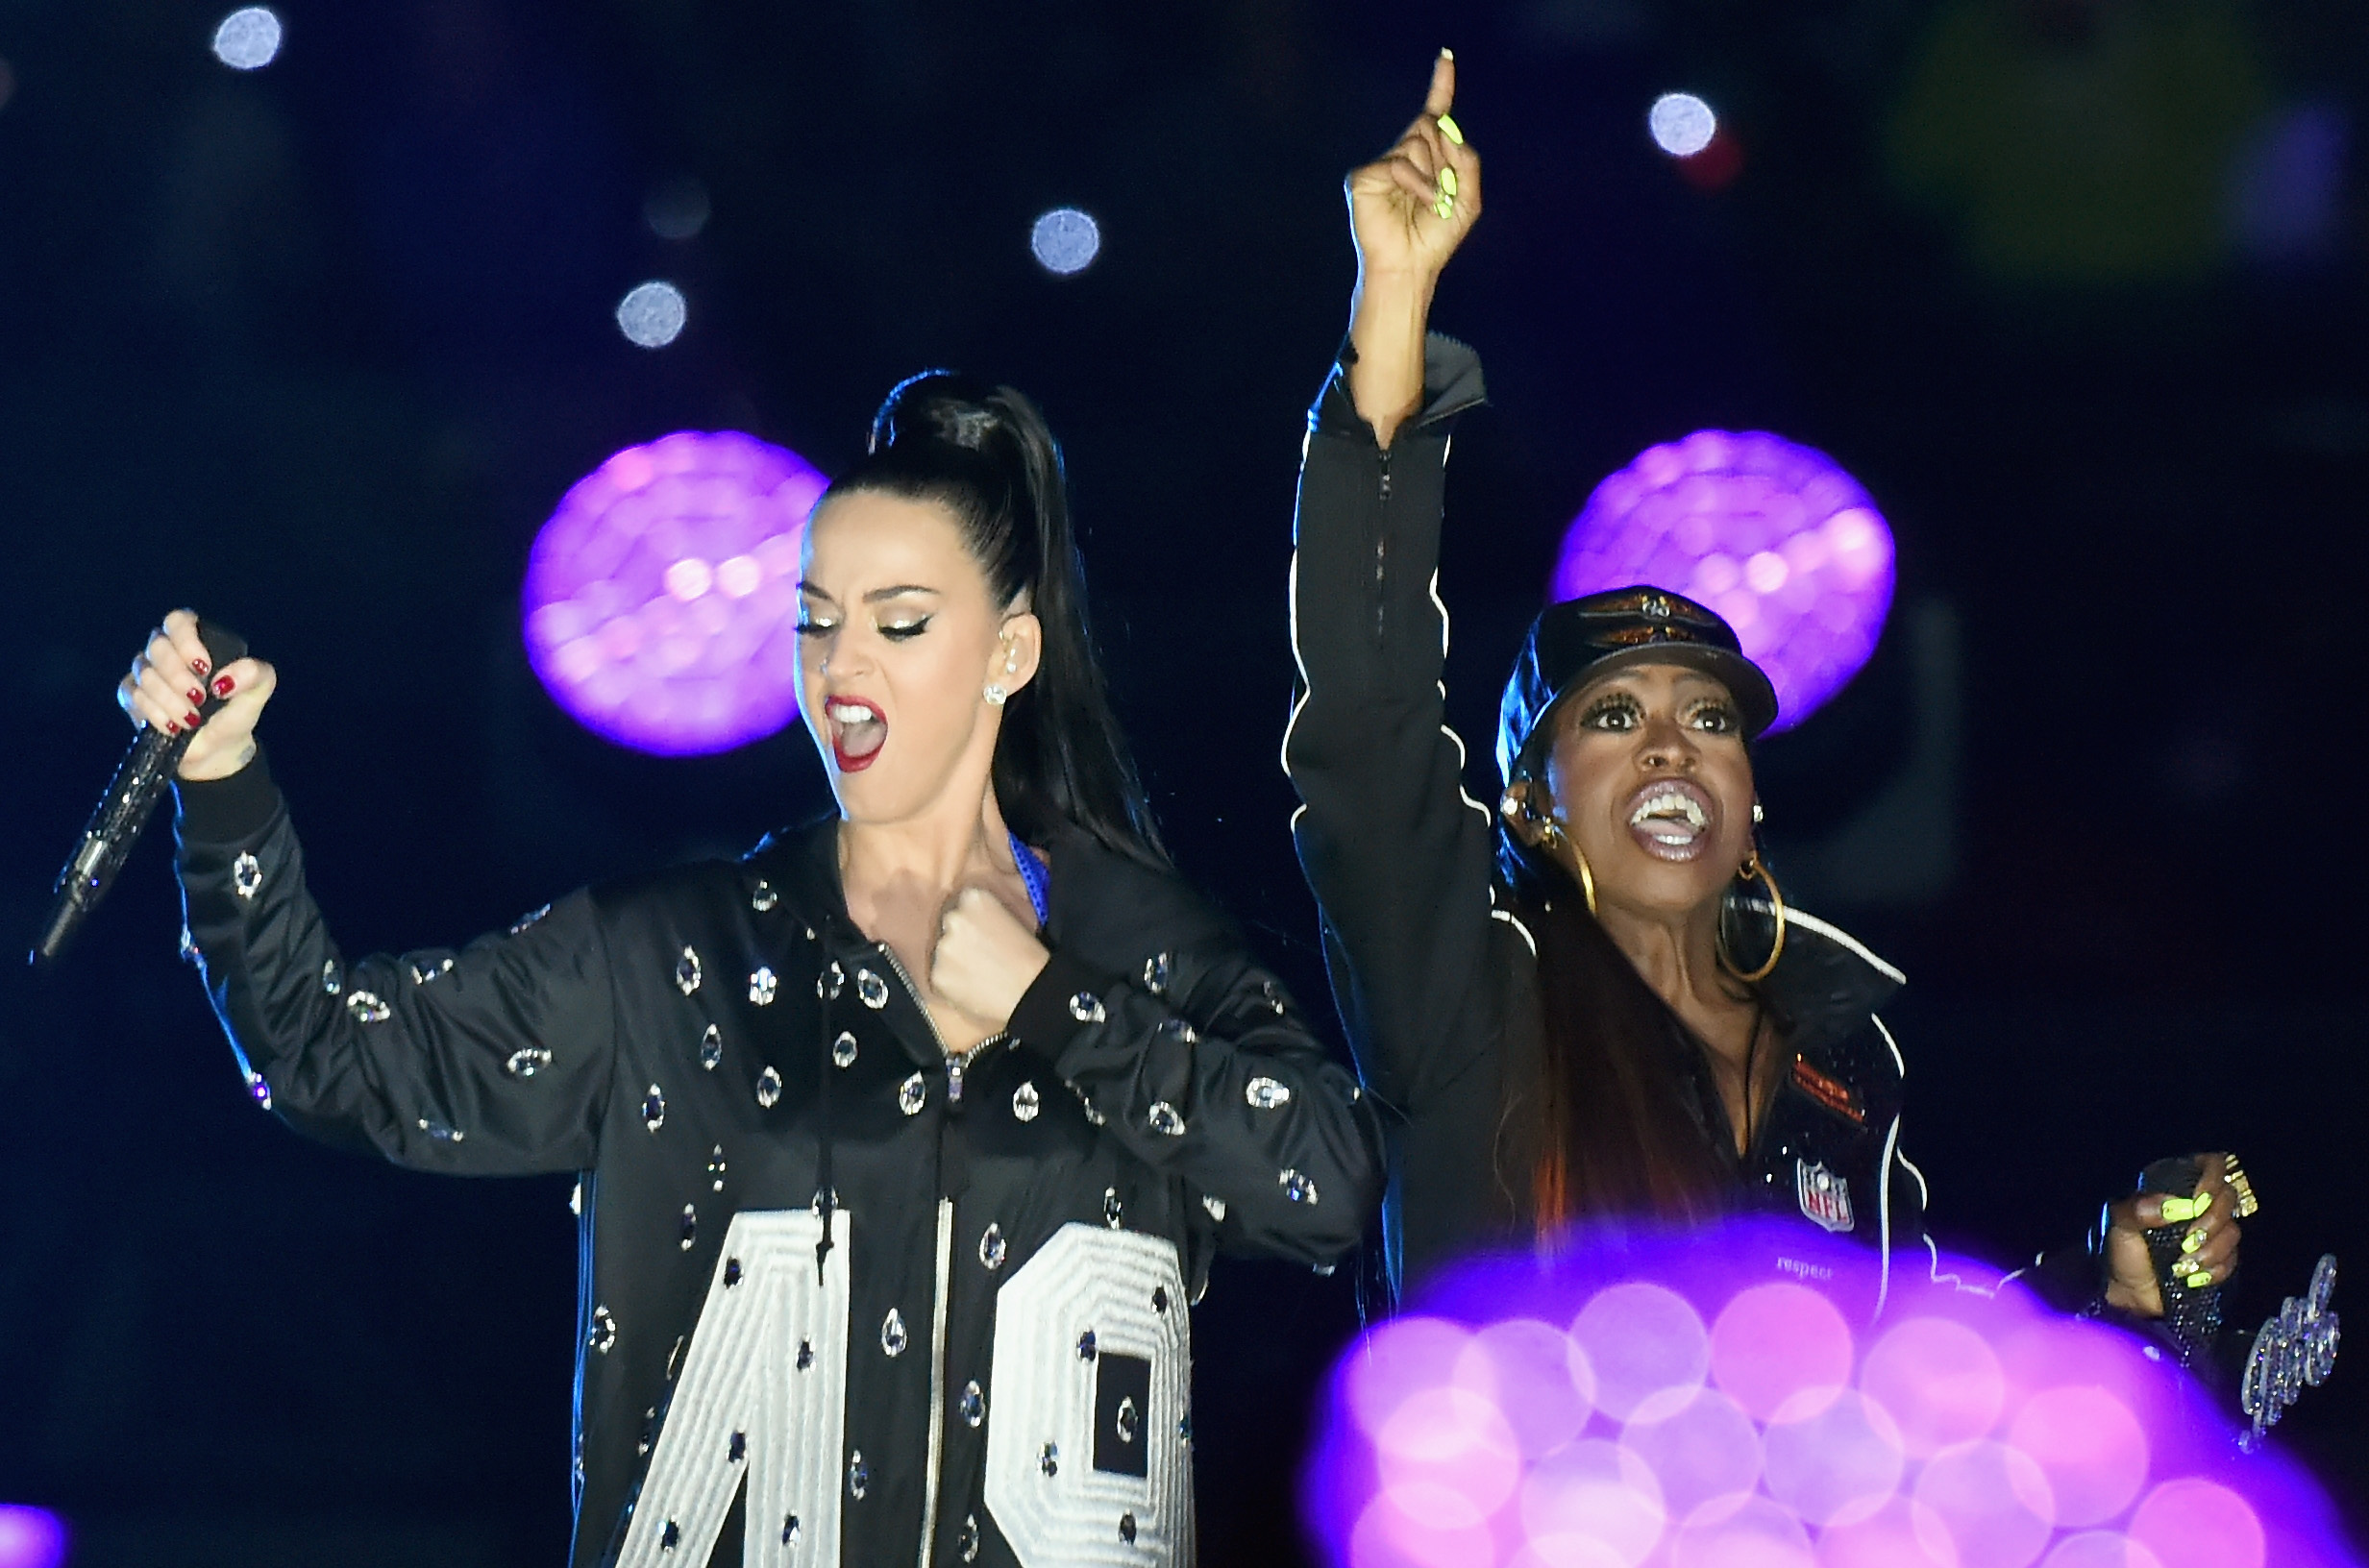 GLENDALE, AZ - FEBRUARY 01:  Recording artists Katy Perry (L) and Missy Elliott perform onstage during the Pepsi Super Bowl X